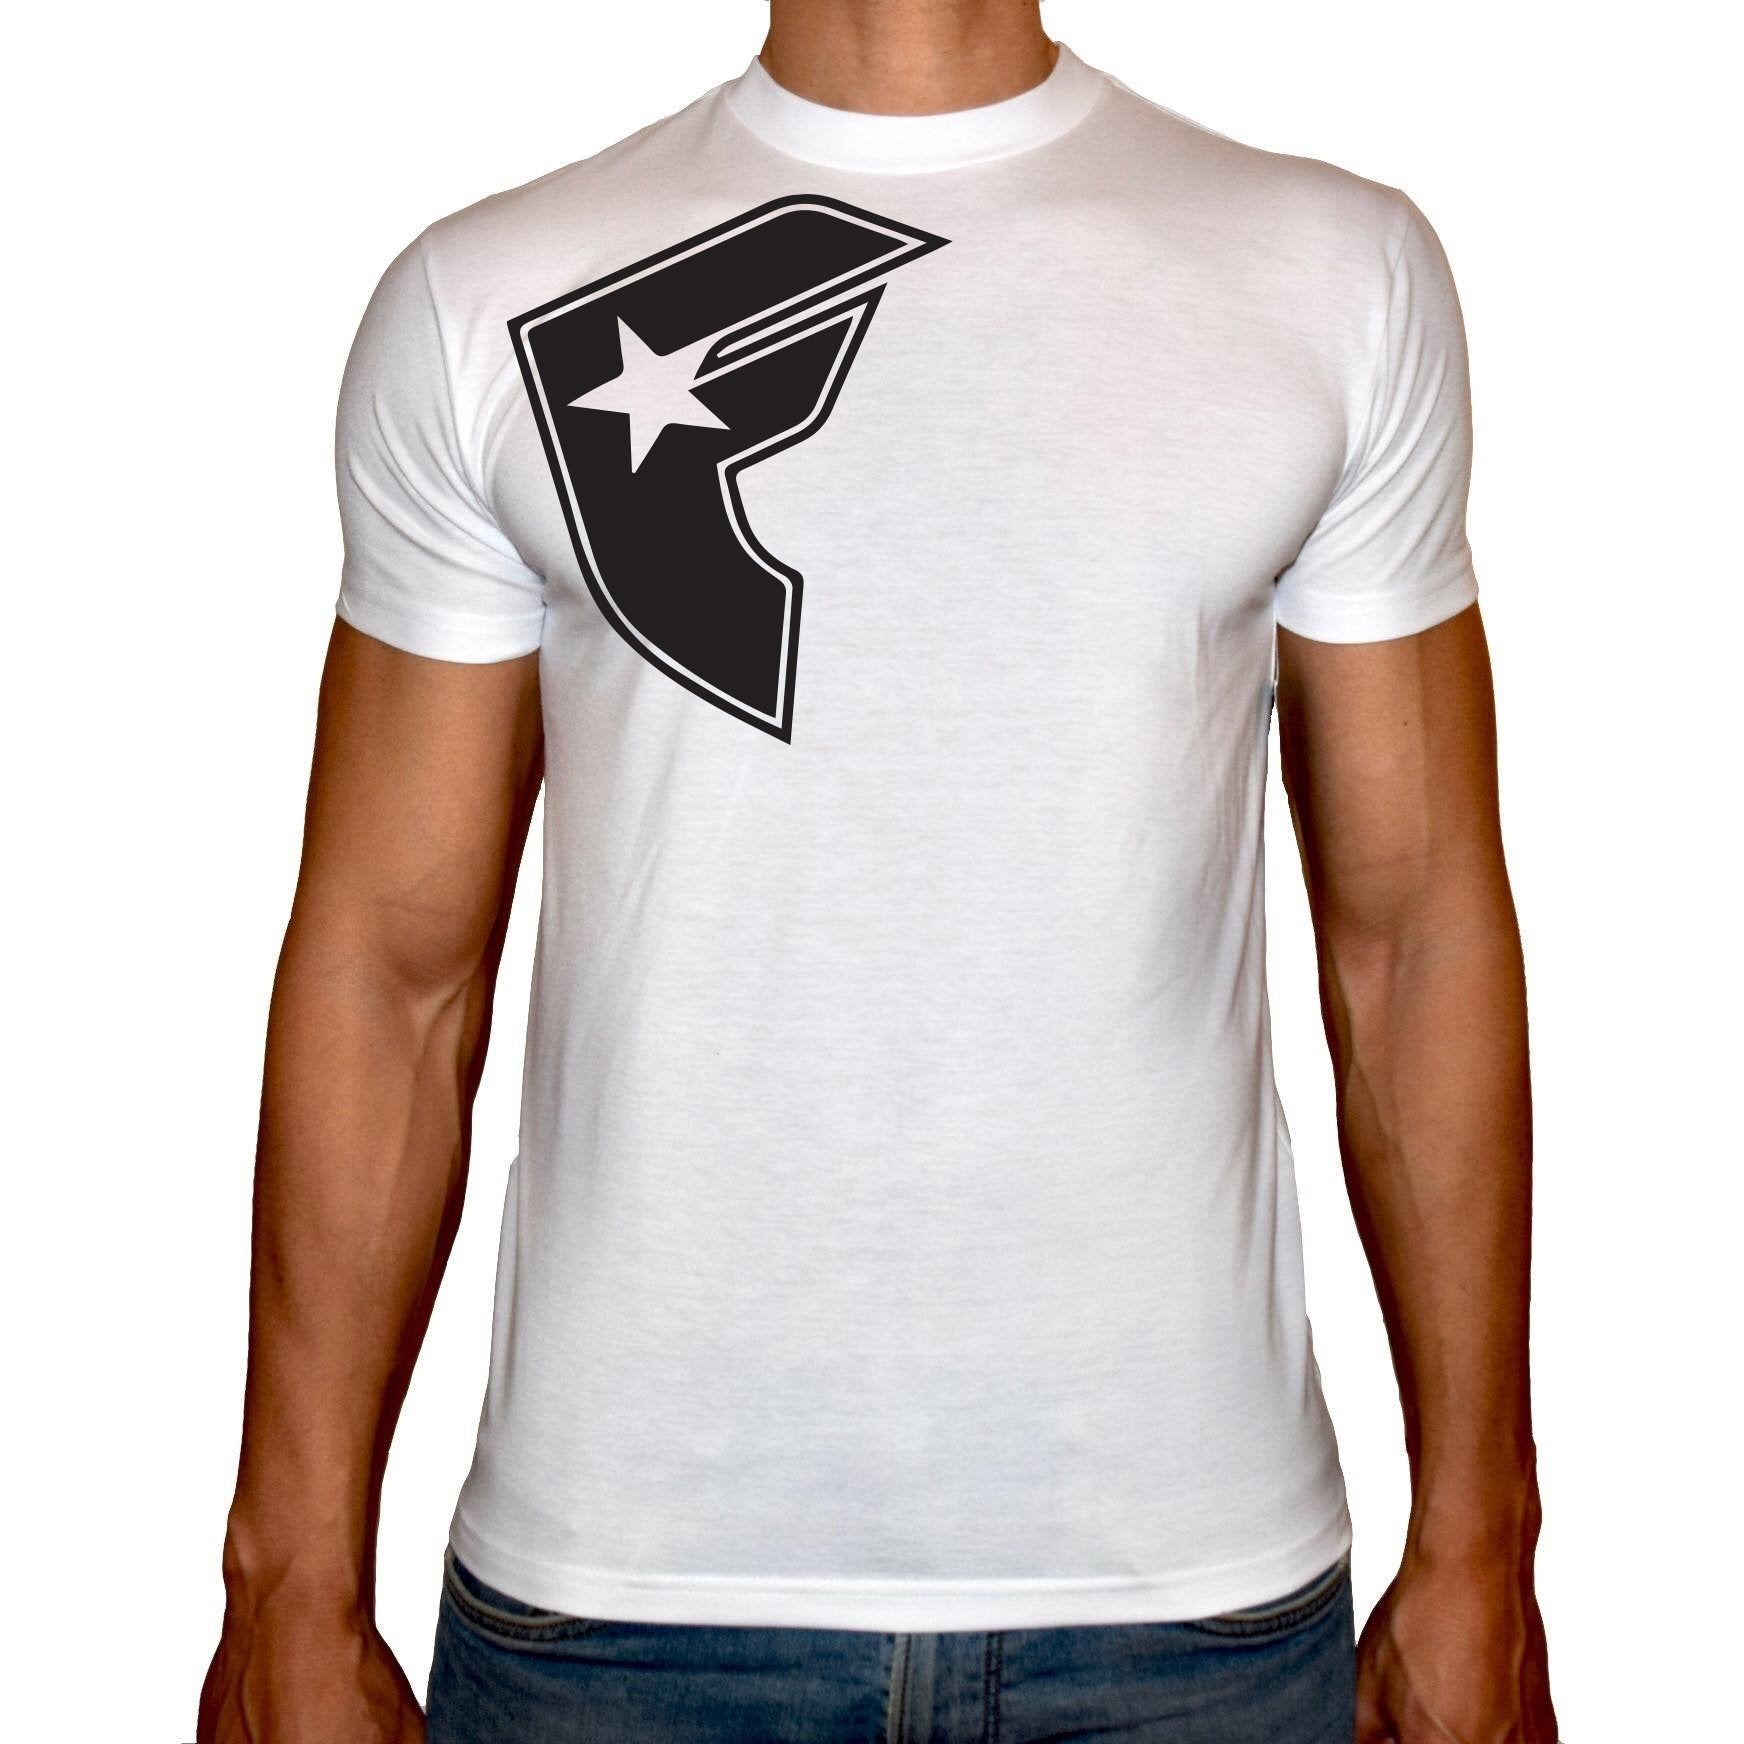 Phoenix WHITE Round Neck Printed T-Shirt Men(F star)